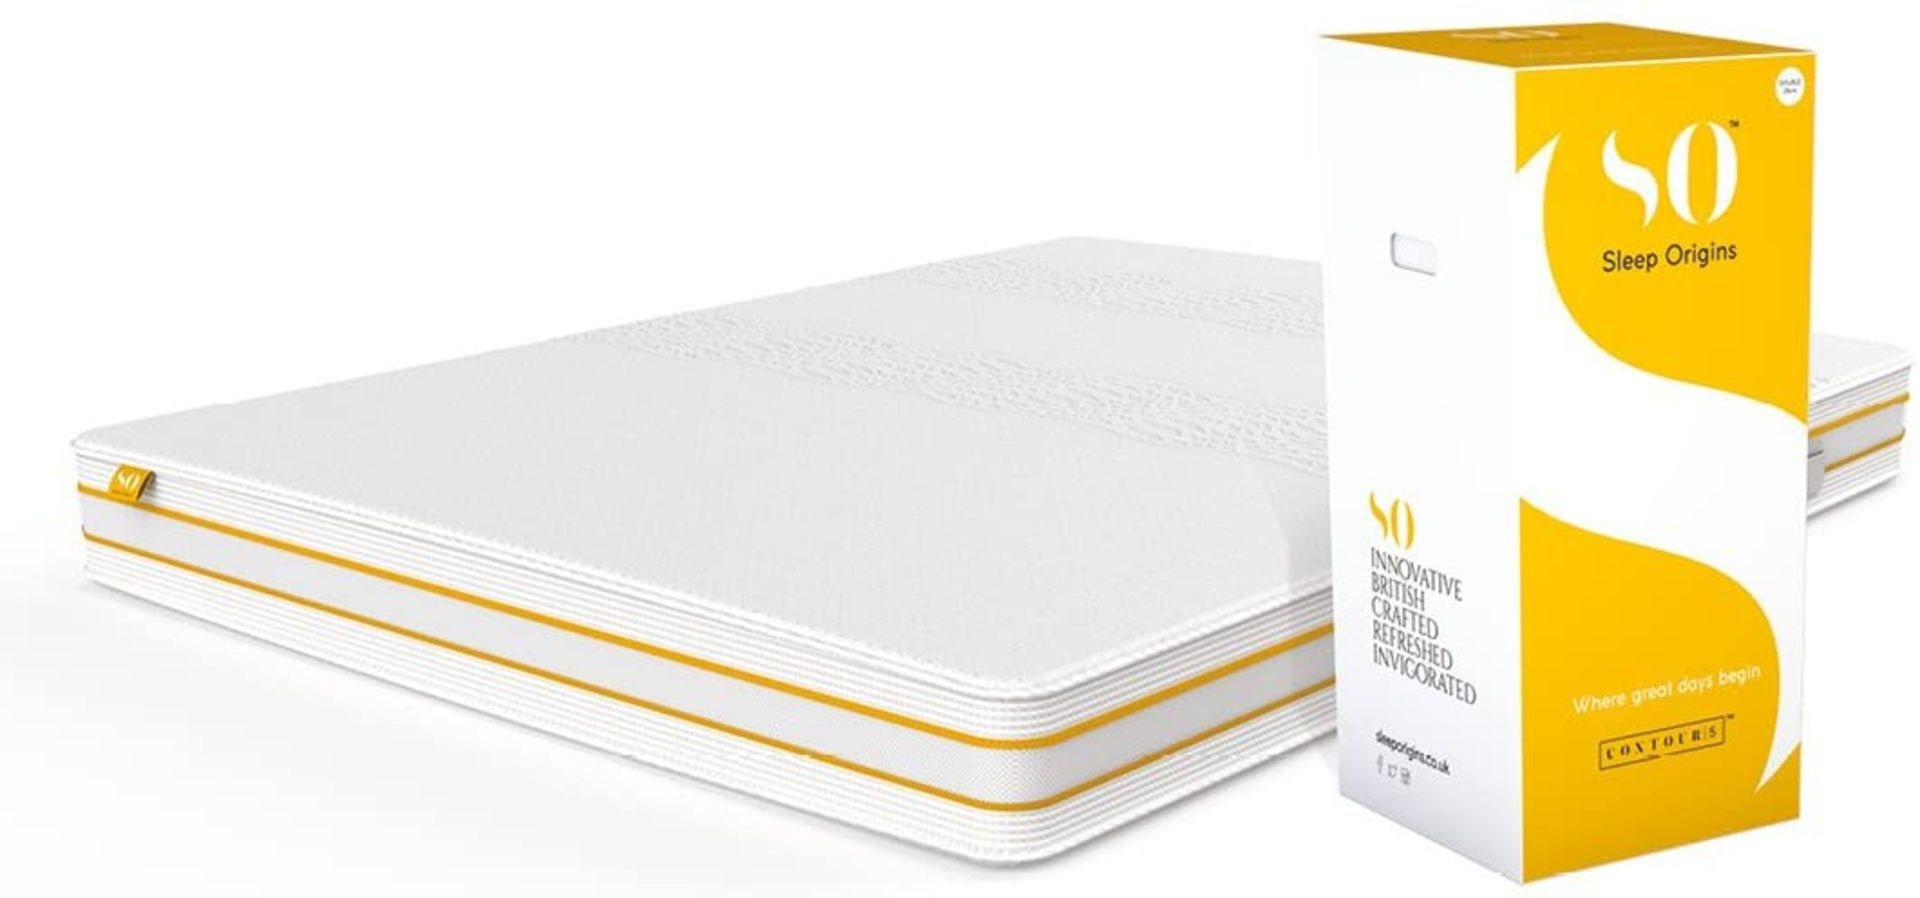   1X   SLEEP ORIGINS KING SIZE 18CM DEEP MATTRESS   NEW AND BOXED  NO ONLINE RESALE  RRP £599  